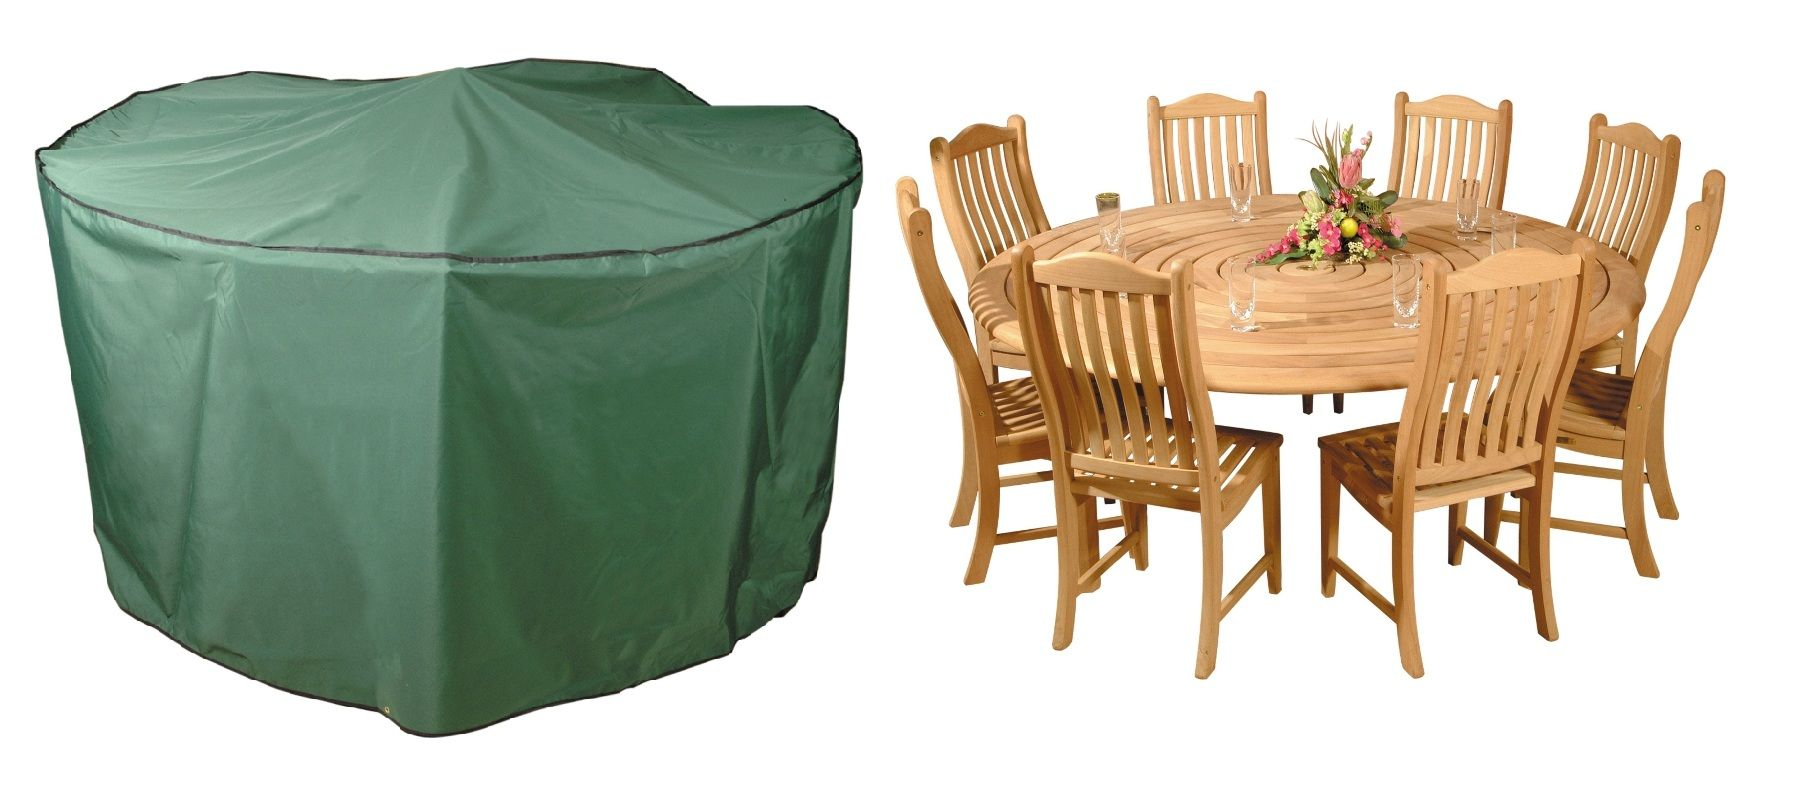 Bosmere Premier 300cm 8-10 Seater Green Circular Patio Set Garden ...